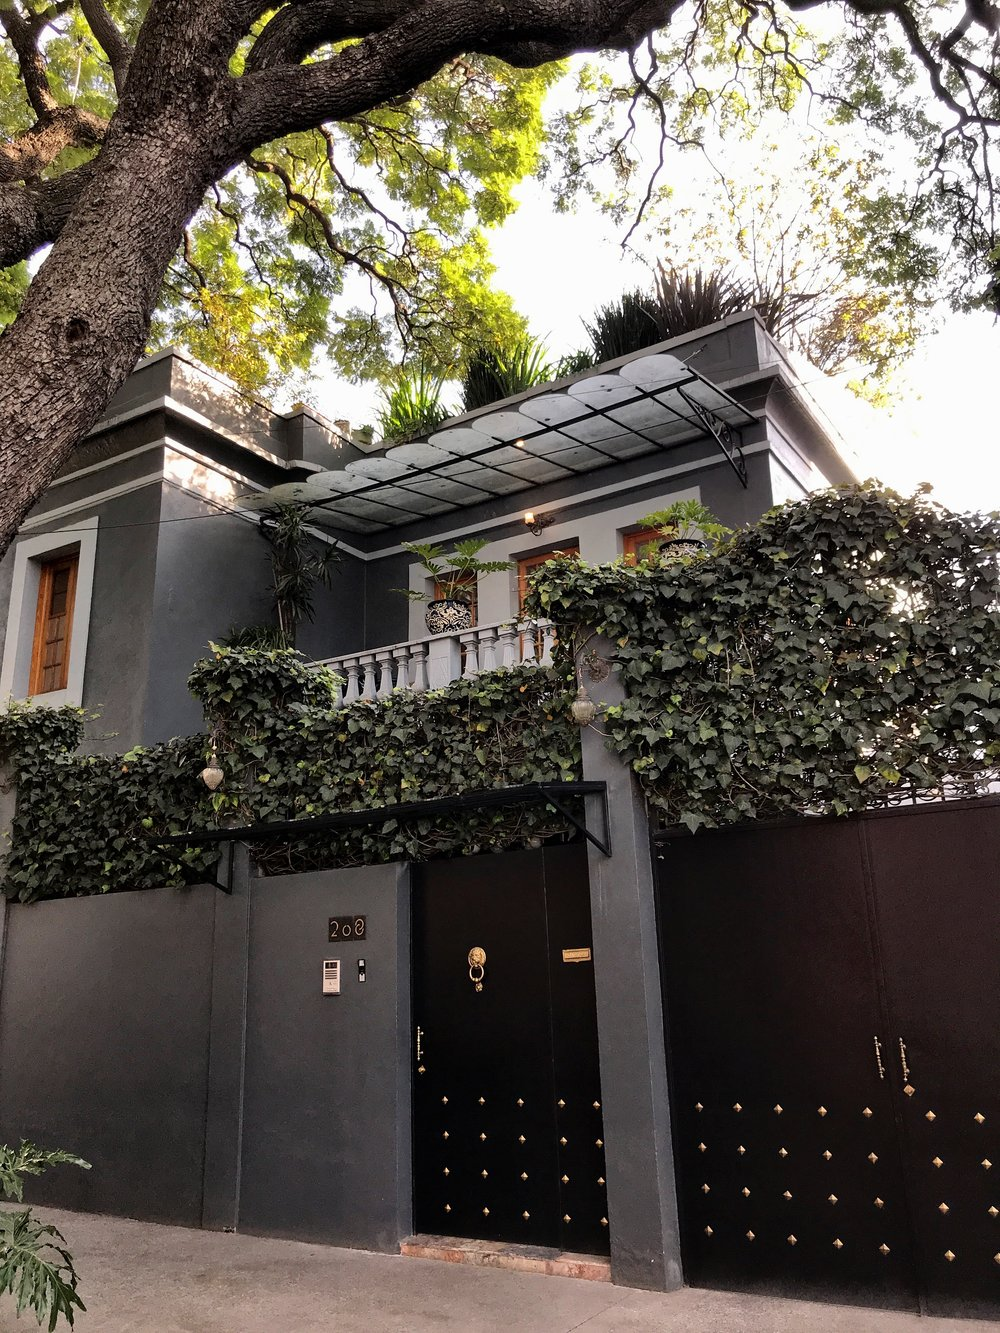 A chic and friendly option in one of the safest neighborhoods in Mexico City